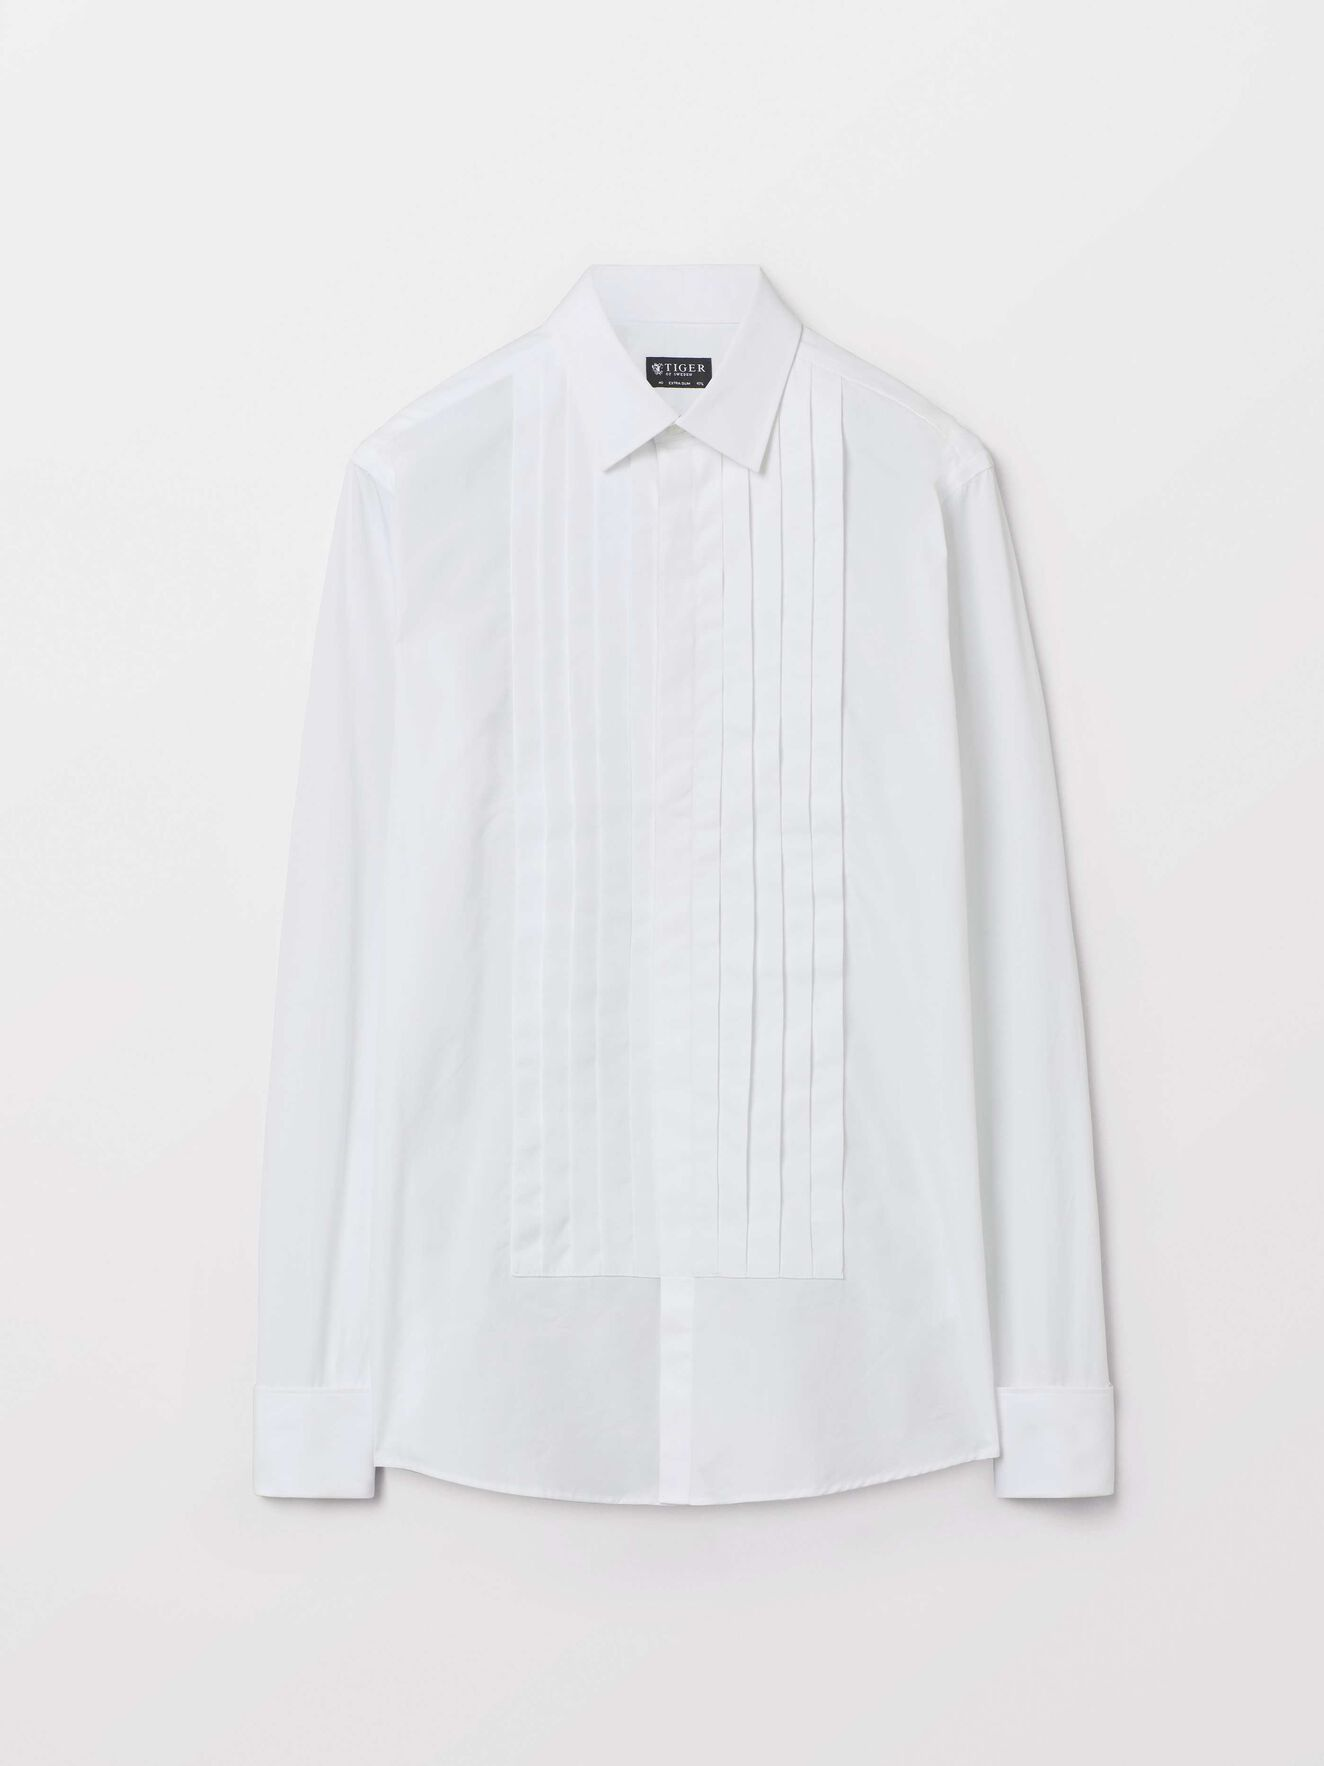 Fulton Shirt in Pure white from Tiger of Sweden